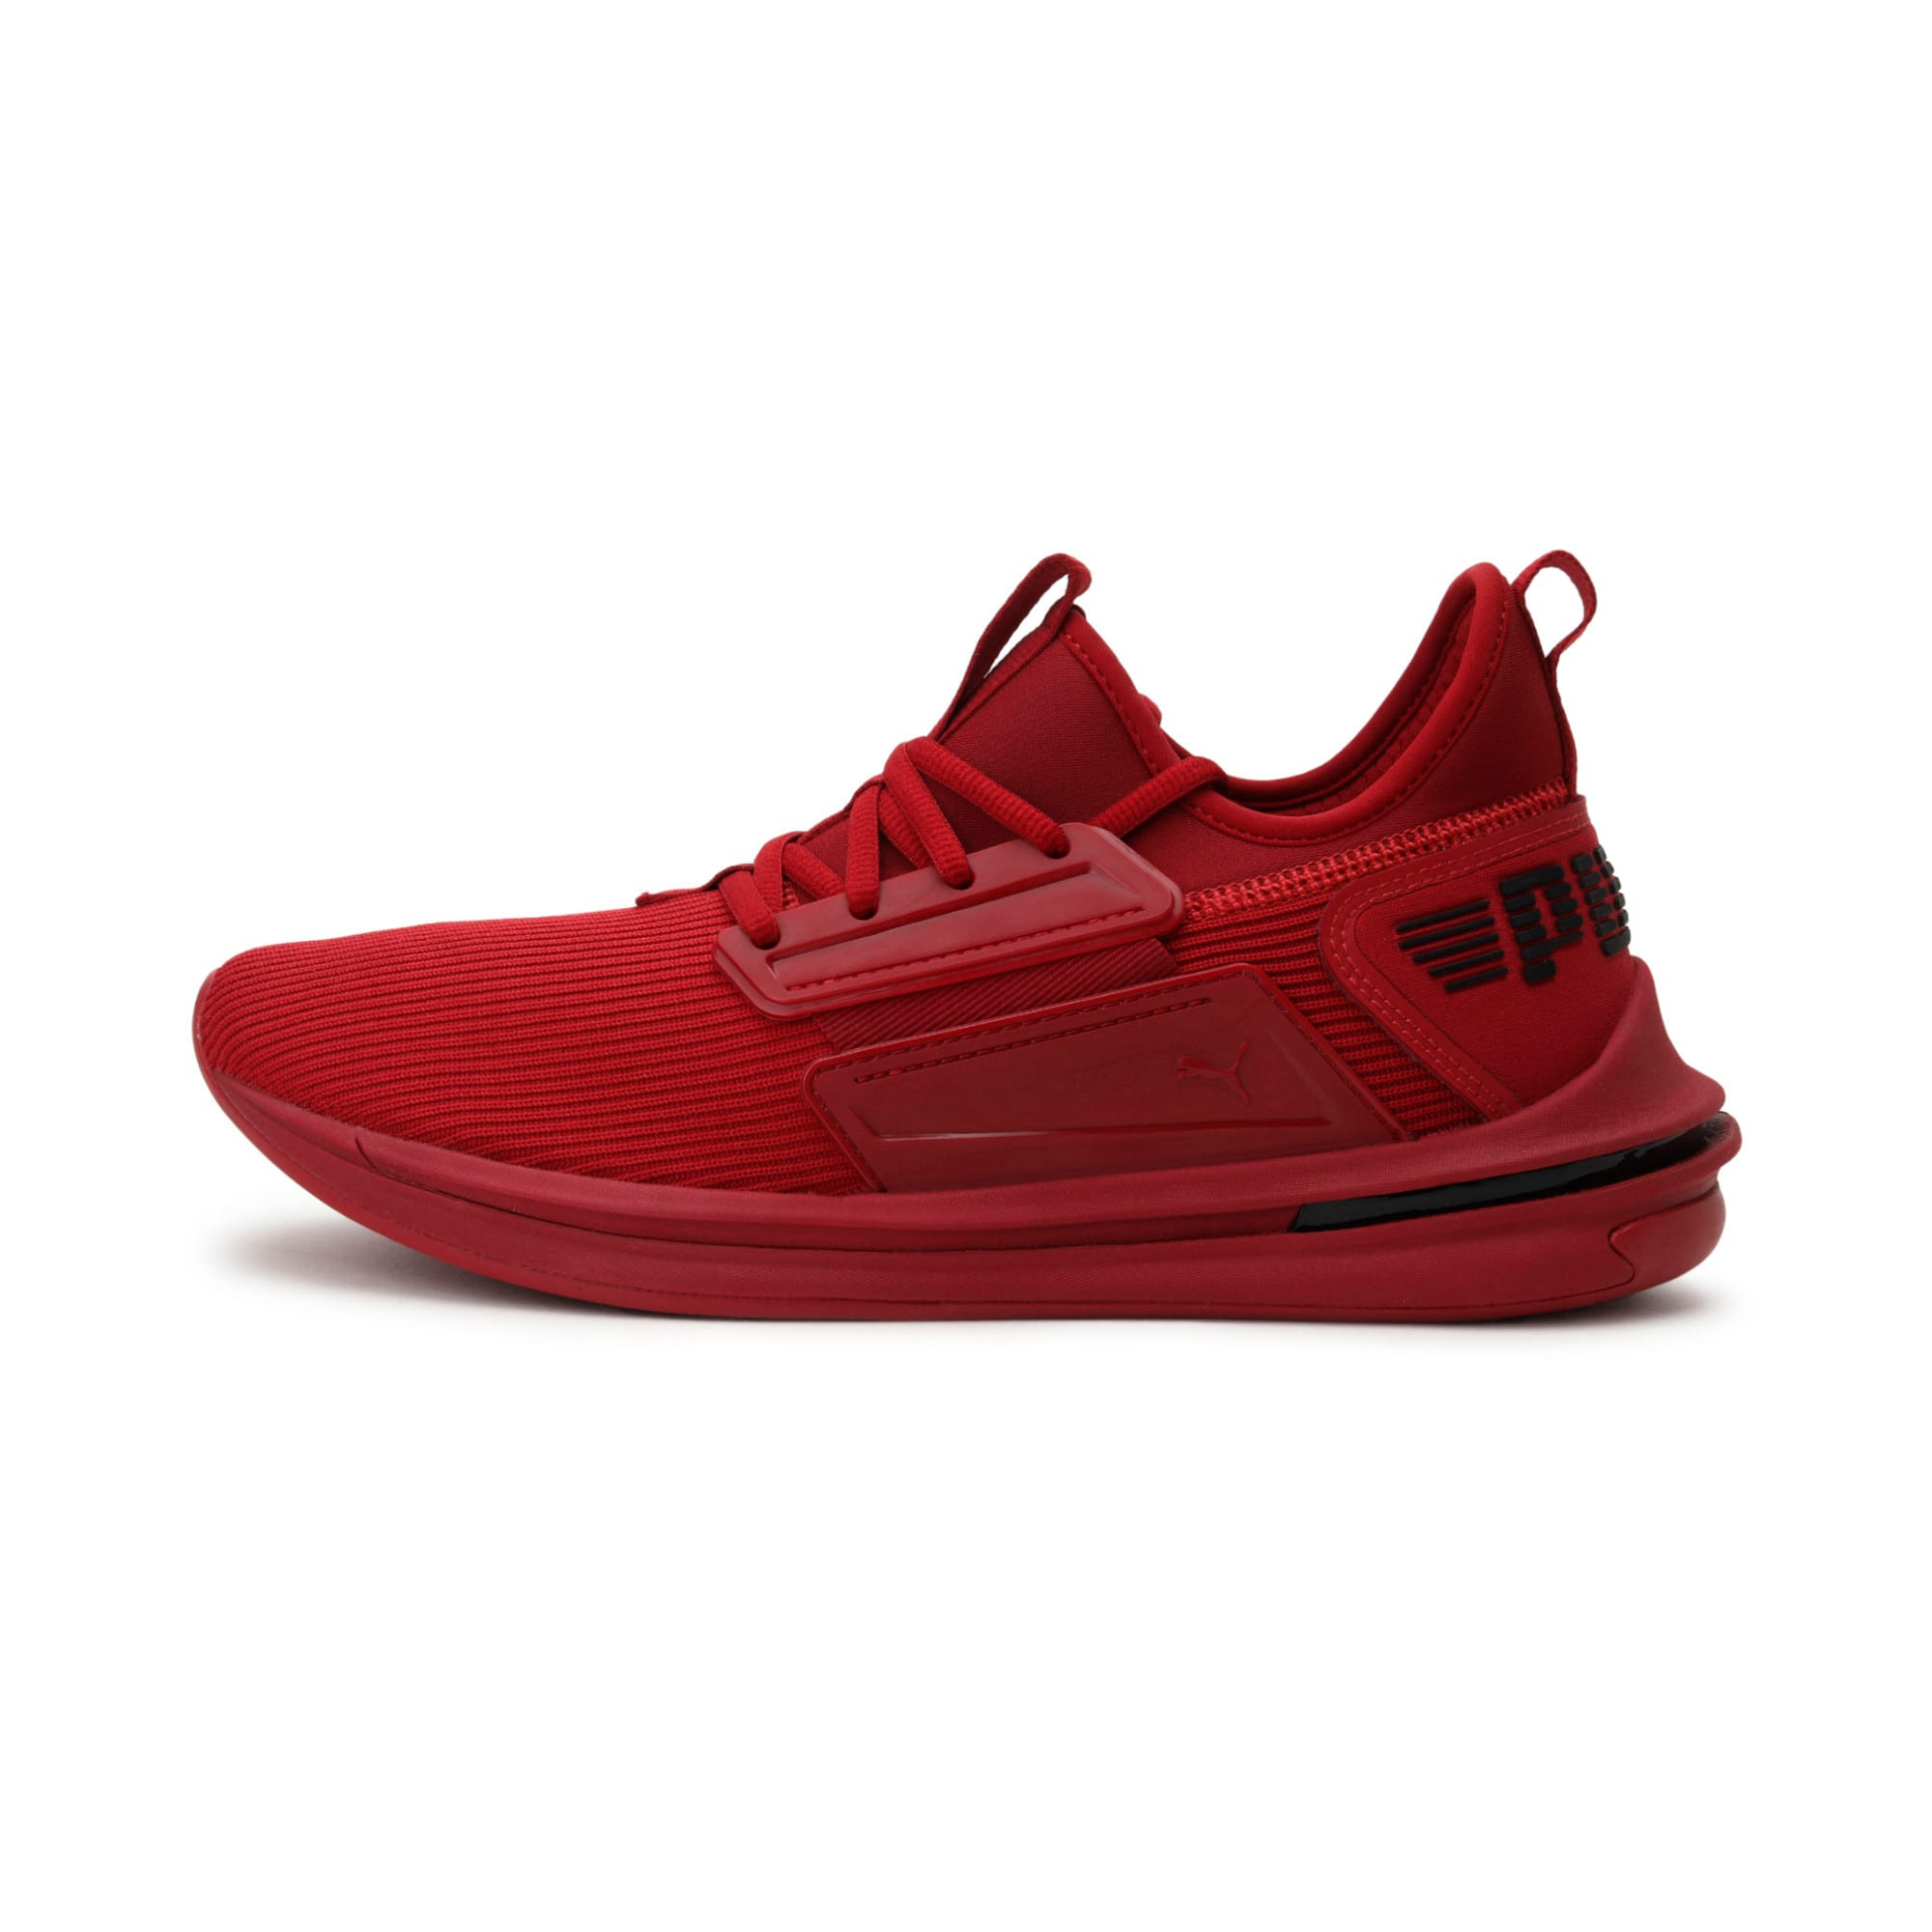 Thumbnail 1 of IGNITE Limitless SR Men's Running Shoes, Red Dahlia, medium-IND